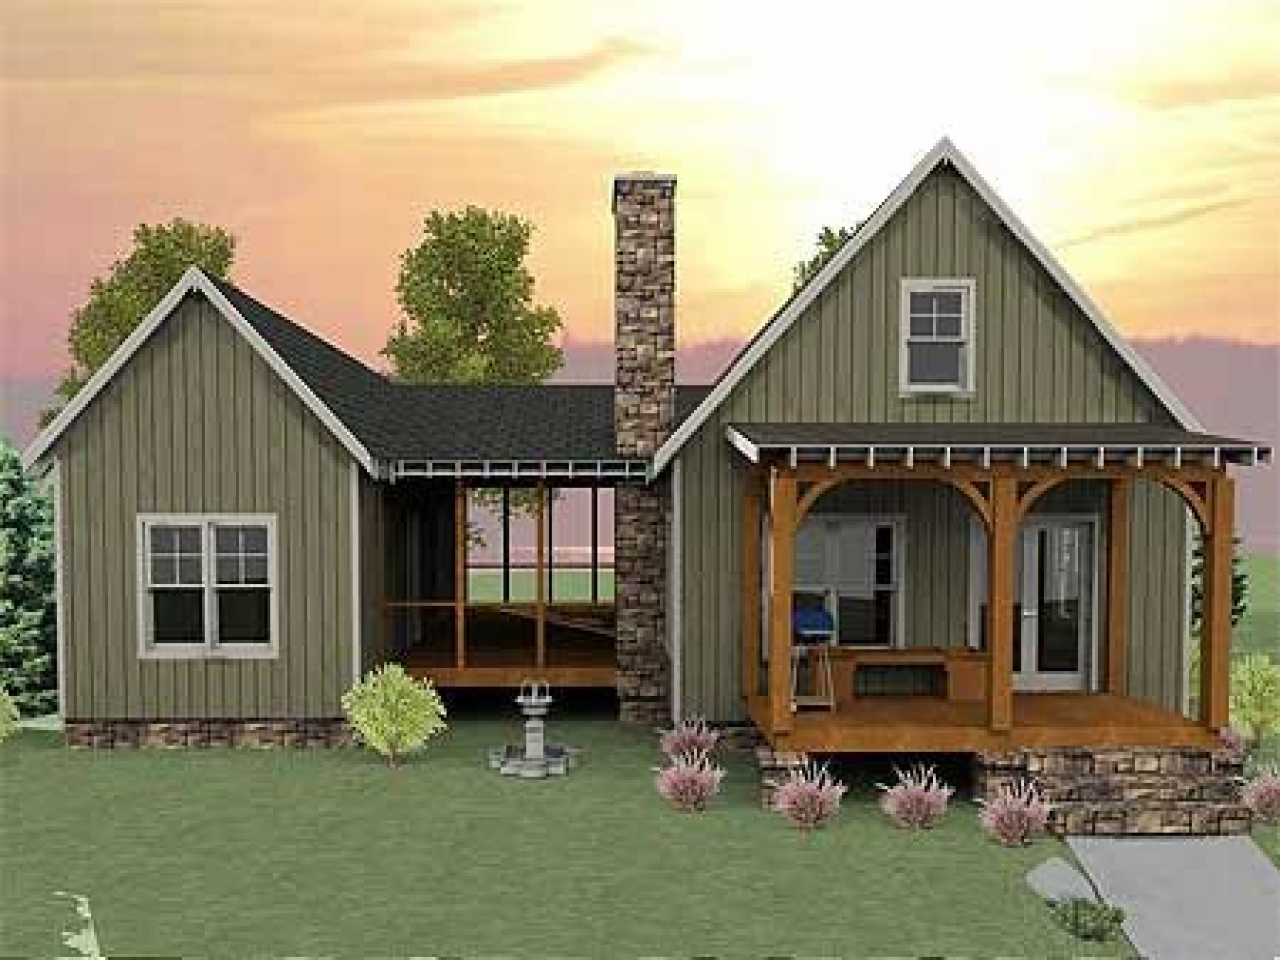 Tiny Home Design Plans: Small House Plans With Screened Porch Small House Plans